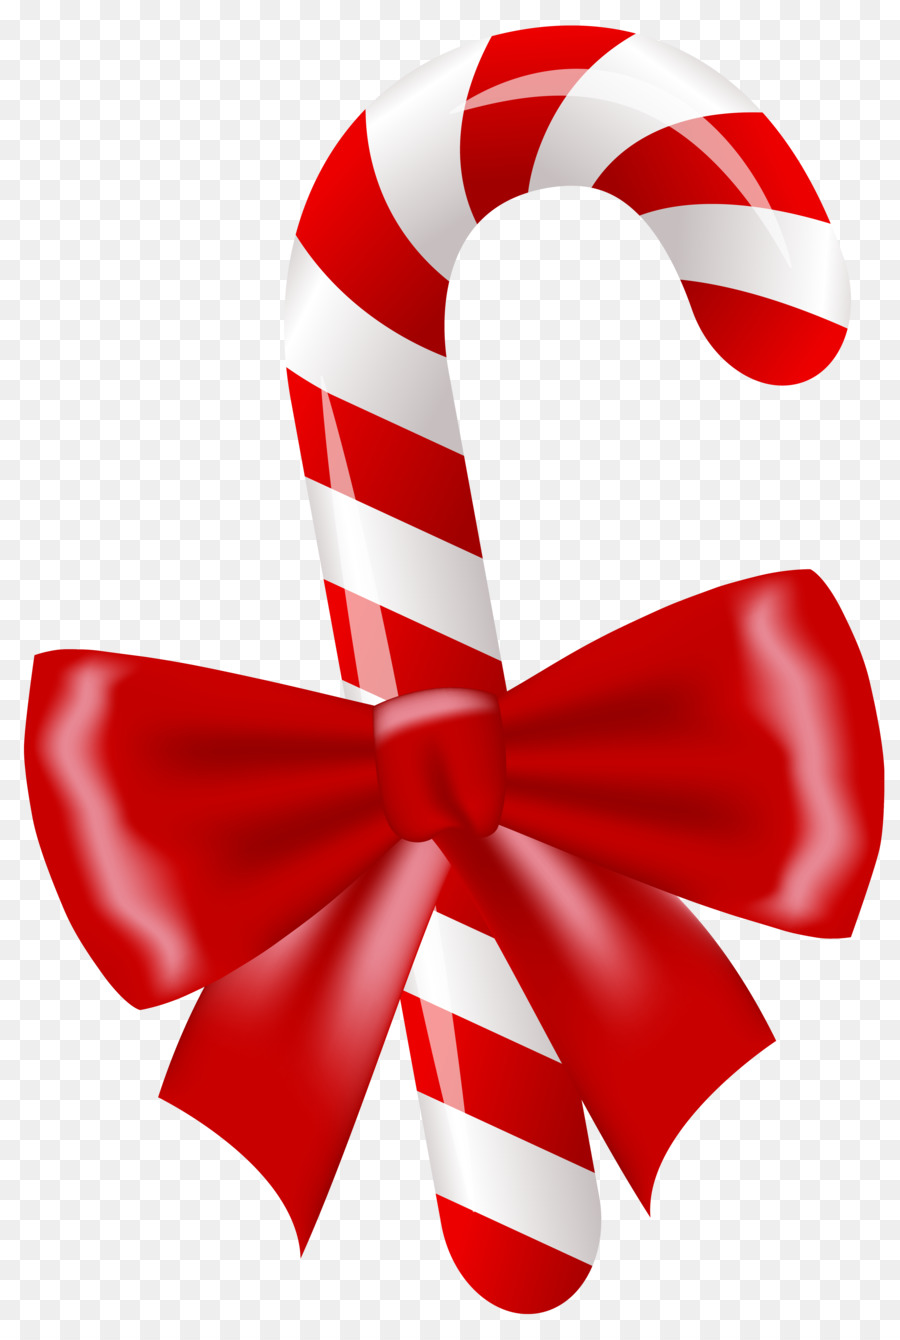 image freeuse download Canes clipart cand. Christmas tree ribbon candy.